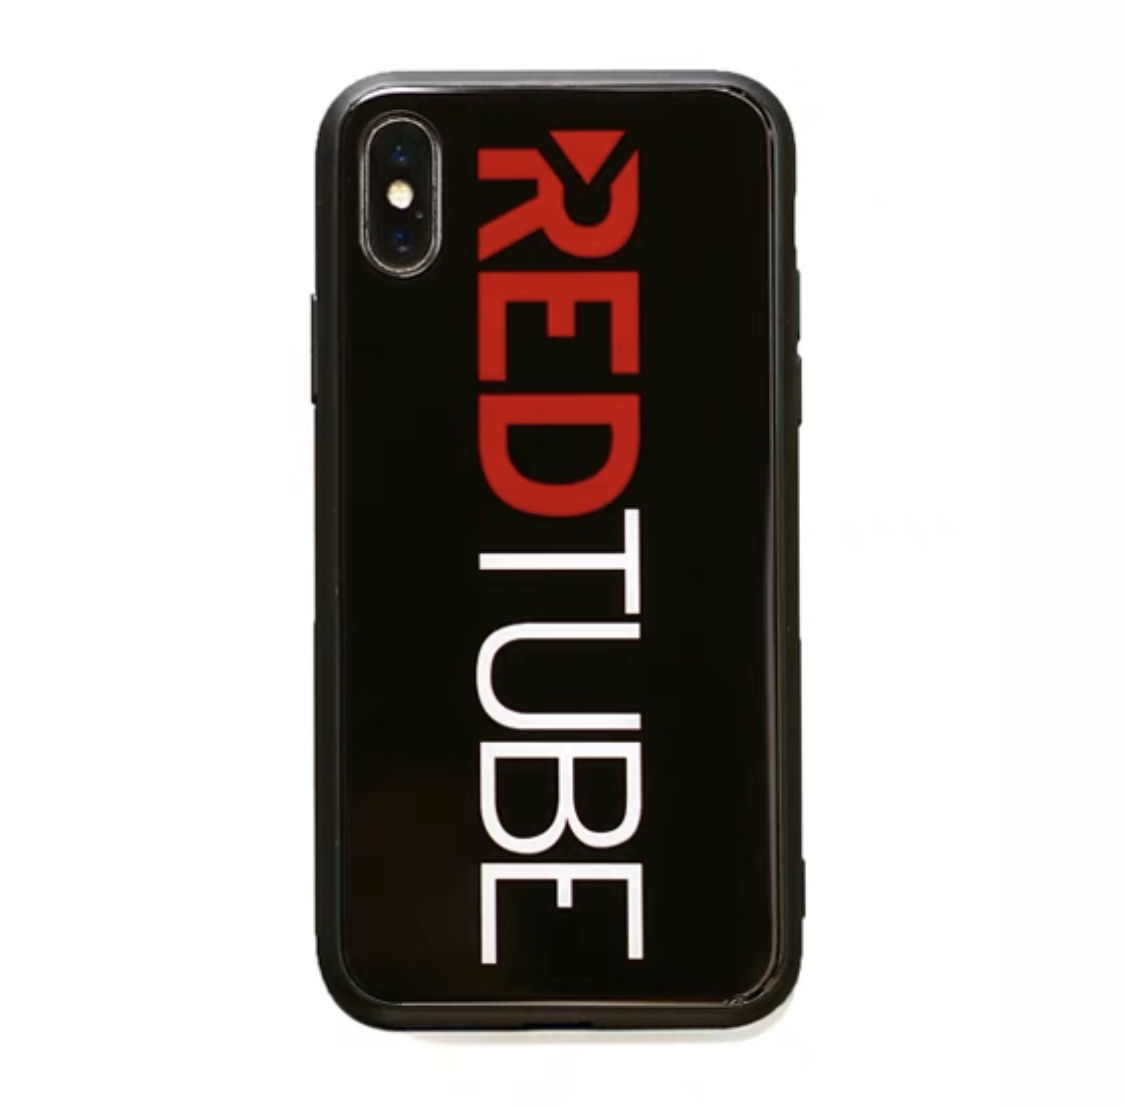 31bdc0a683 RED TUBE IPHONE CASE - Shanghaiobserved